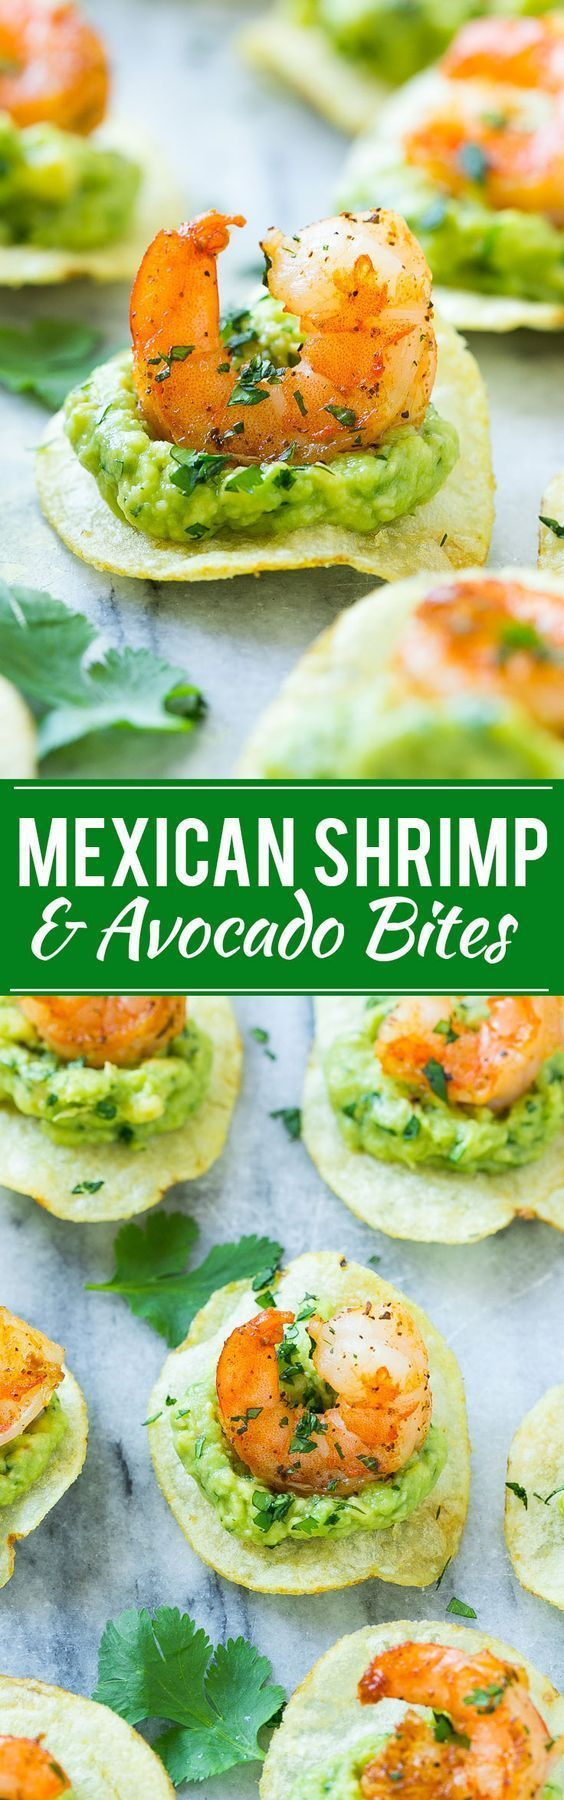 Mexican Shrimp and Avocado Bites Appetizer Recipe via Dinner at the Zoo - This recipe for Mexican shrimp bites is seared shrimp and guacamole layered onto individual potato chips. A super easy appetizer that's perfect for entertaining!